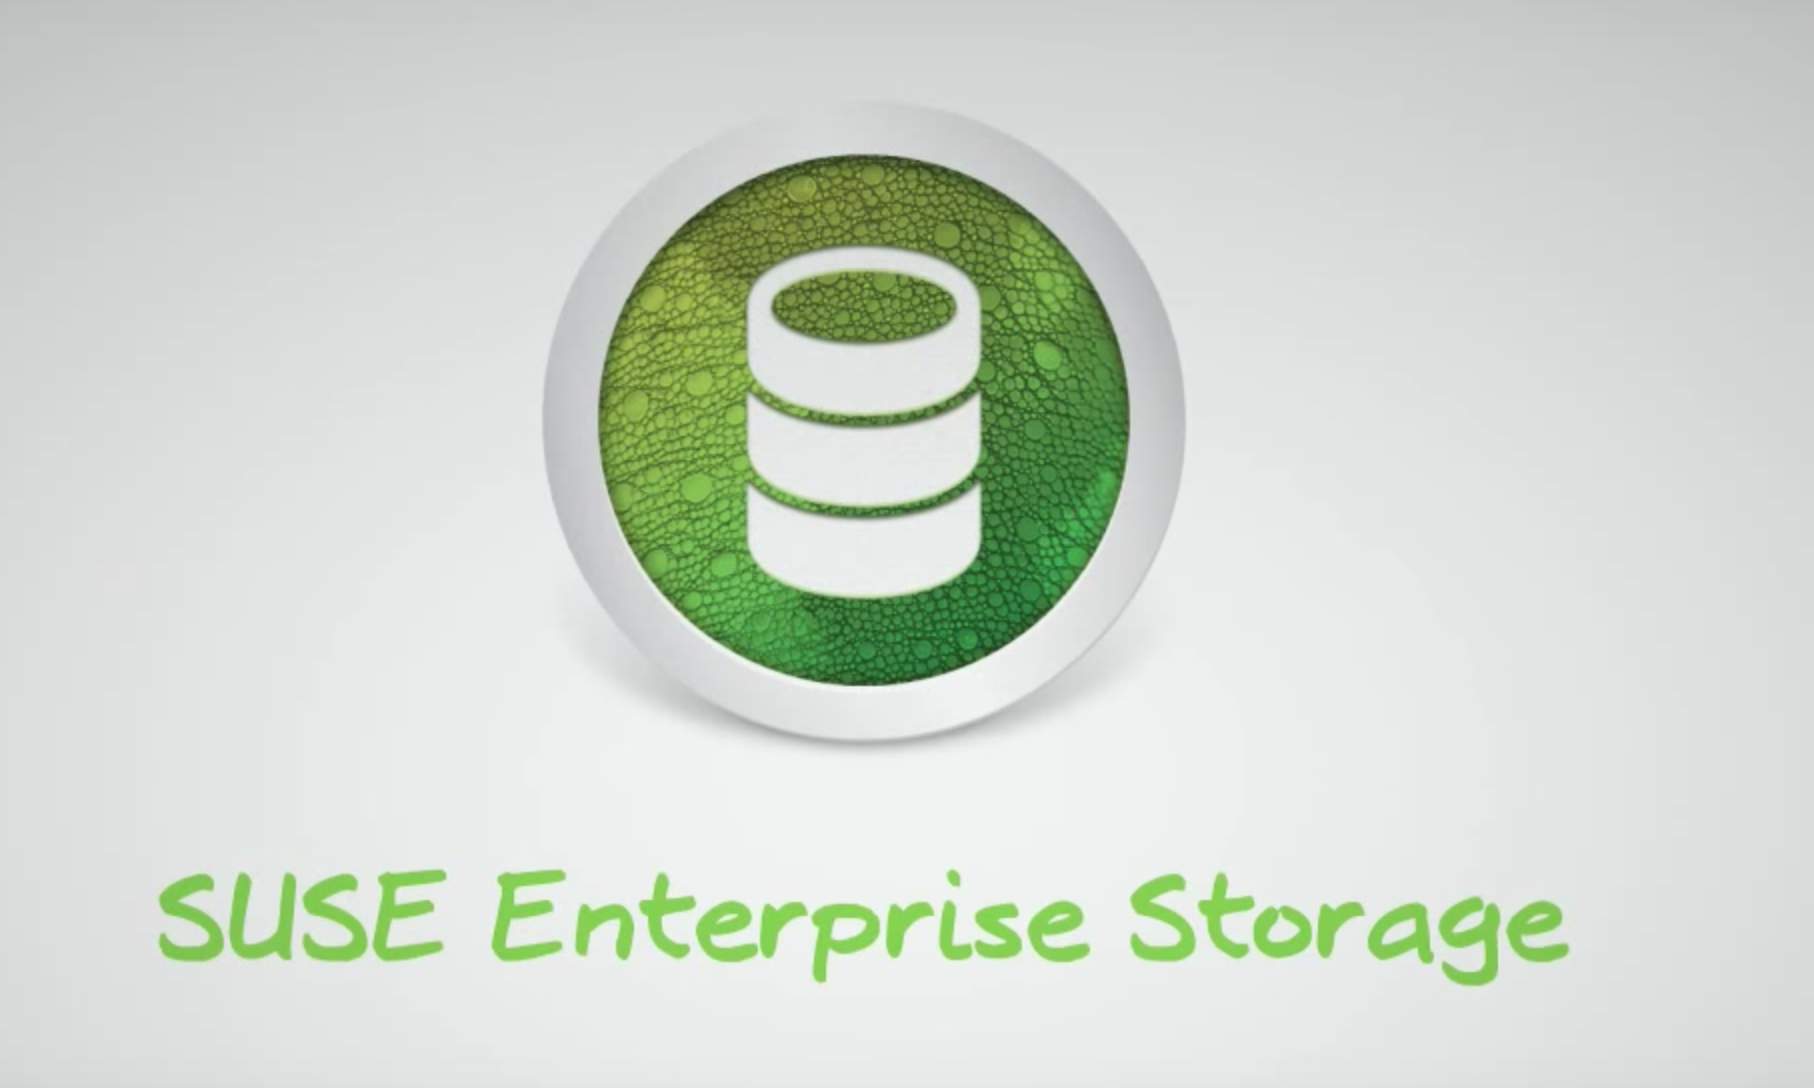 SUSE Enterprise Storage™